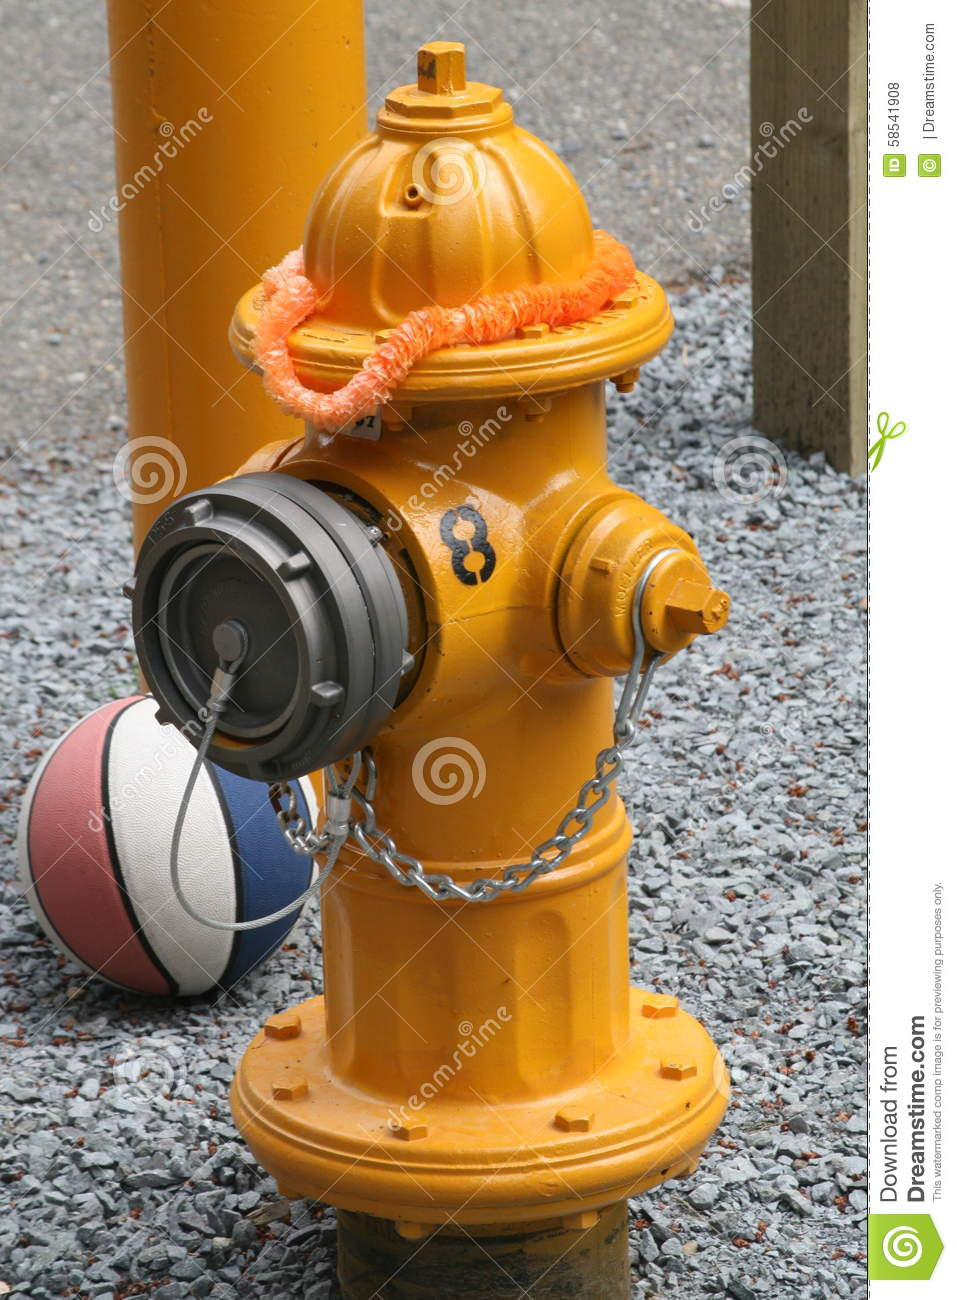 Hydrant-Partei